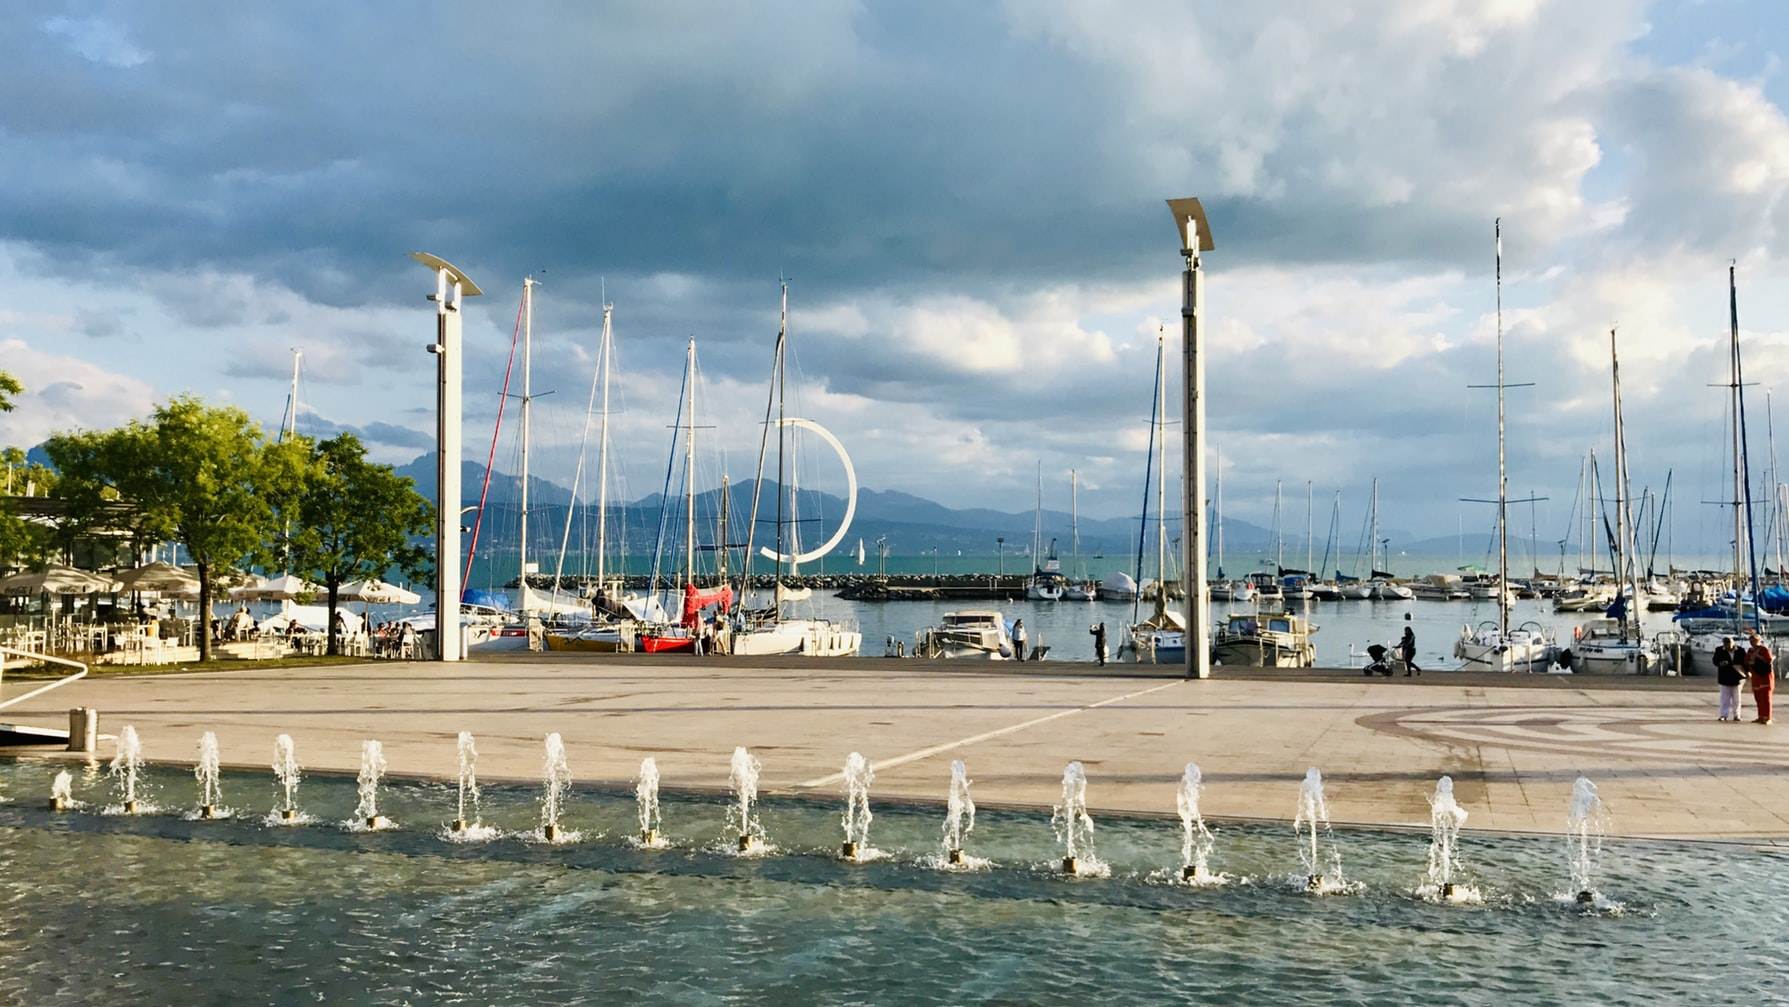 view of the harbor in Lausanne with boat masts and a fountain in the foreground